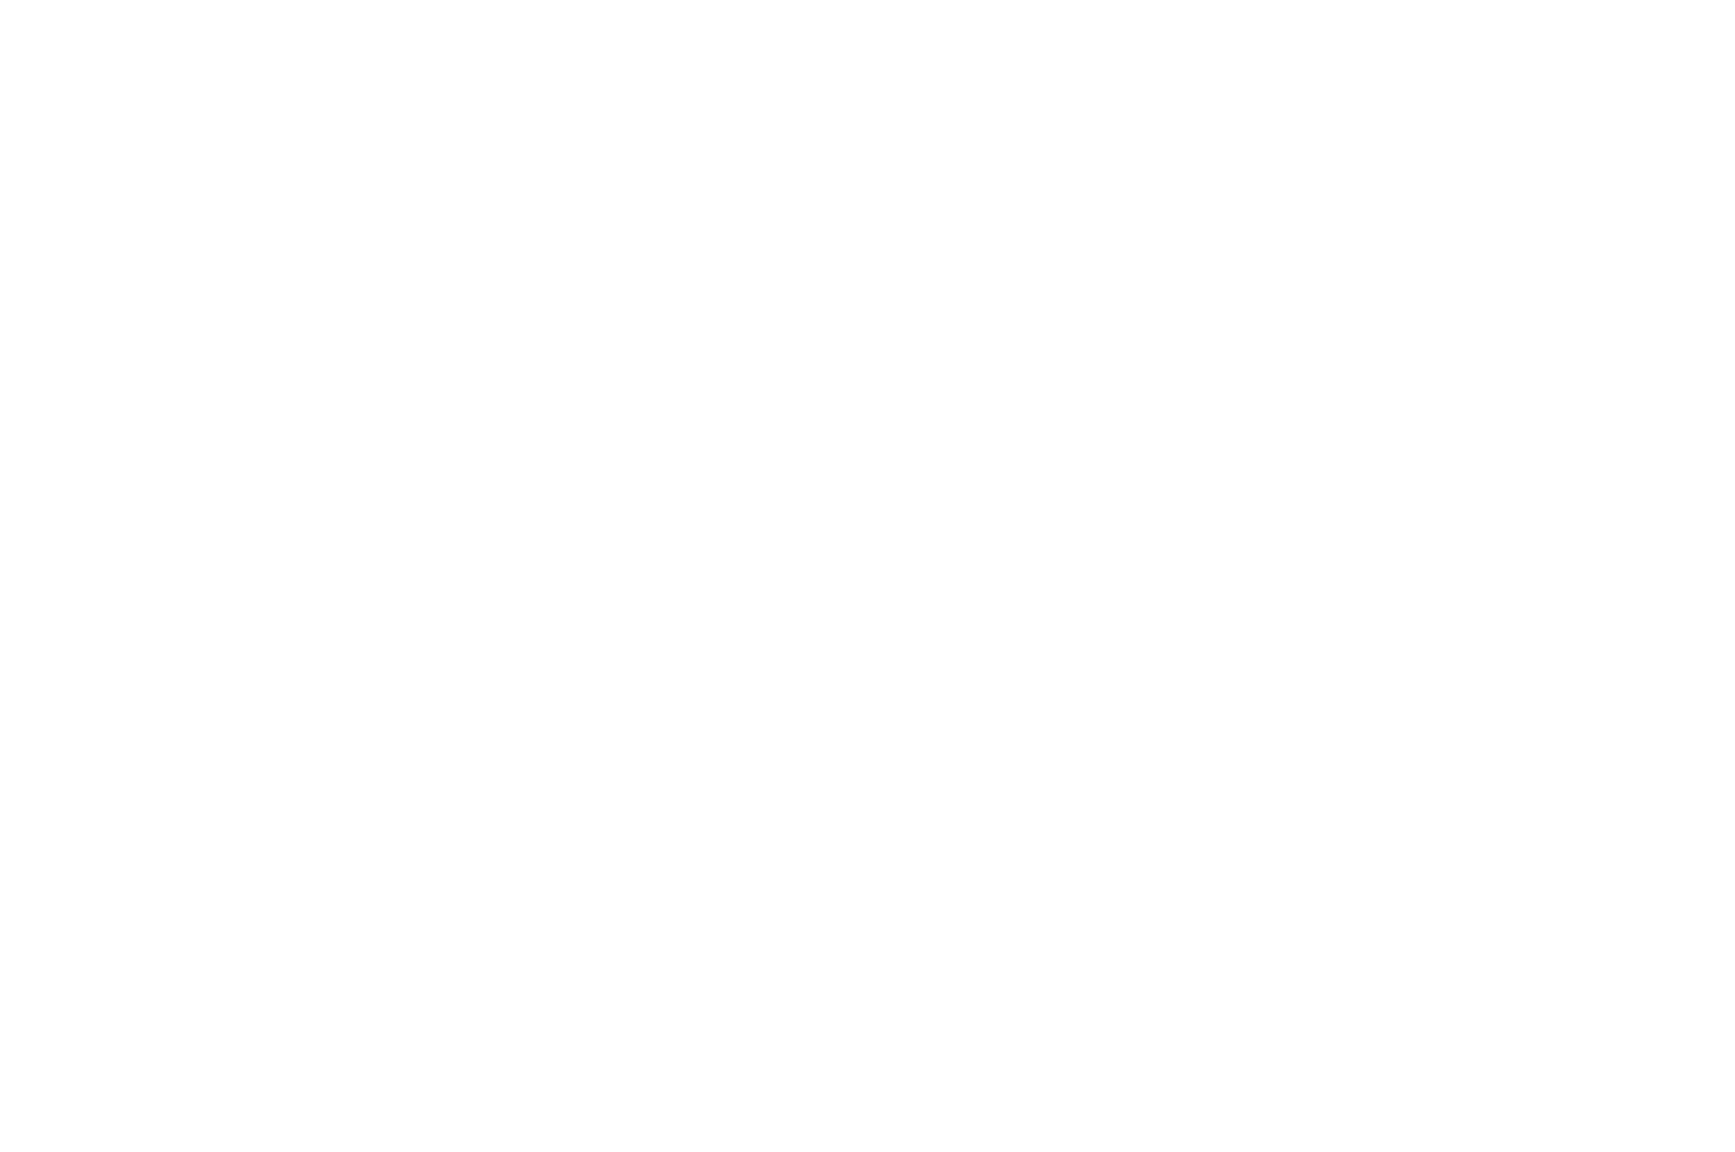 OFFICIAL SELECTION - AOF Festival Writers Awards